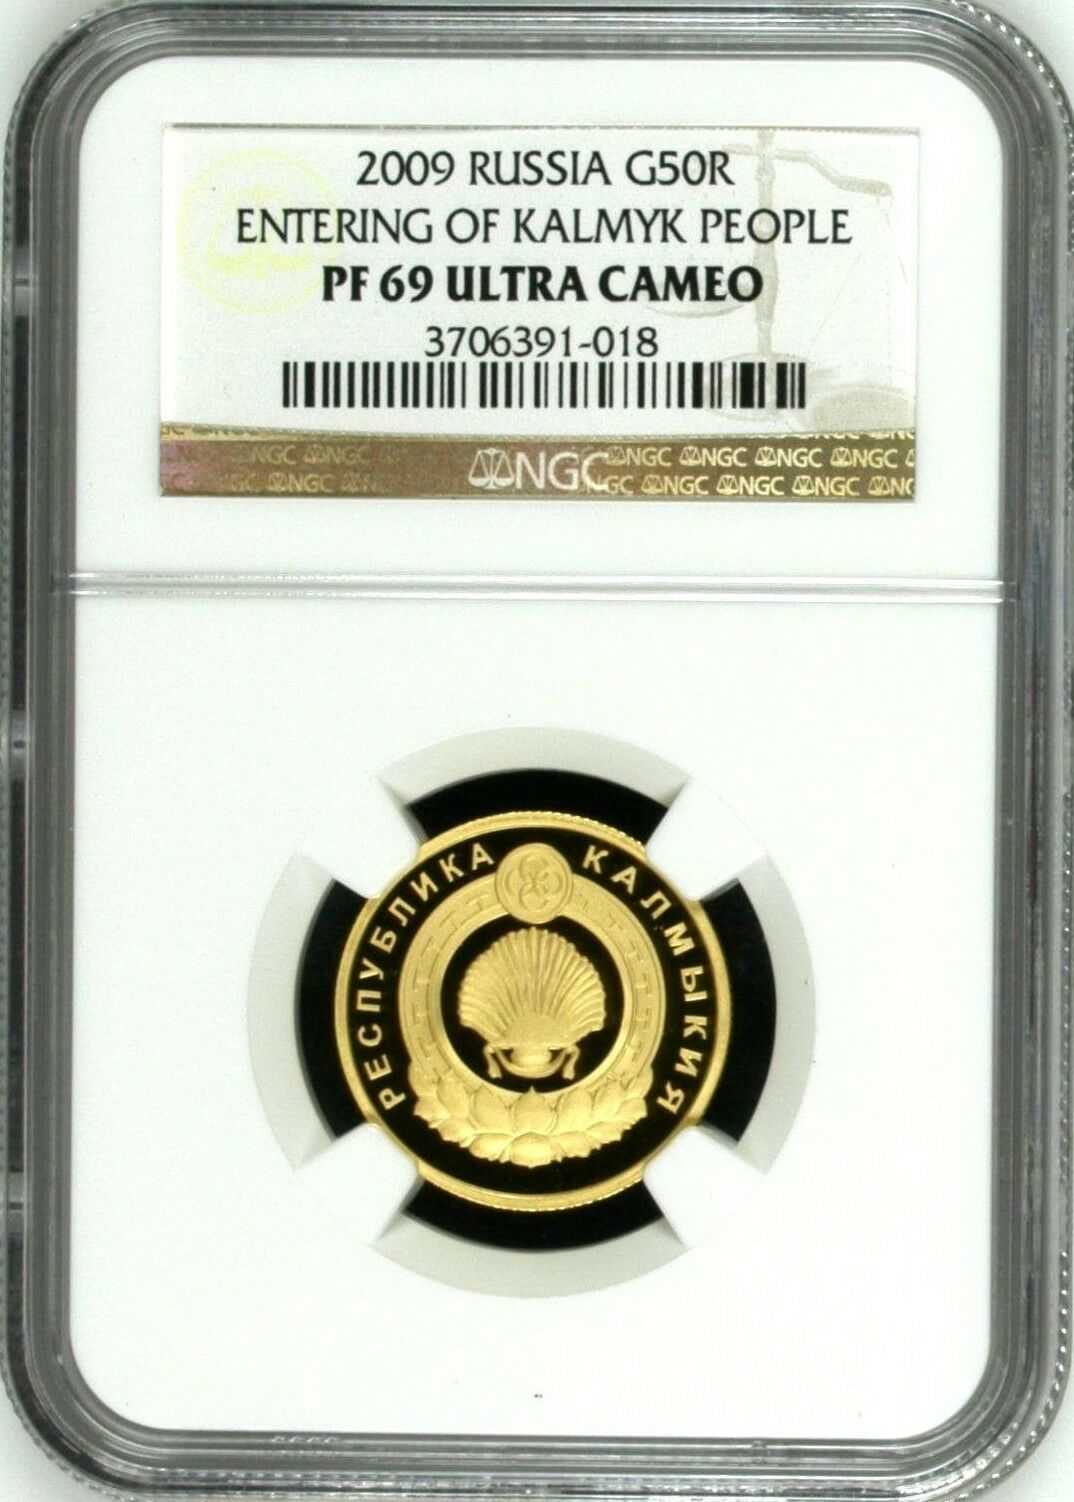 2009 Russia Gold 50 Roubles Kalmyk Peoples 400th Anniversary Annexation NGC PF69